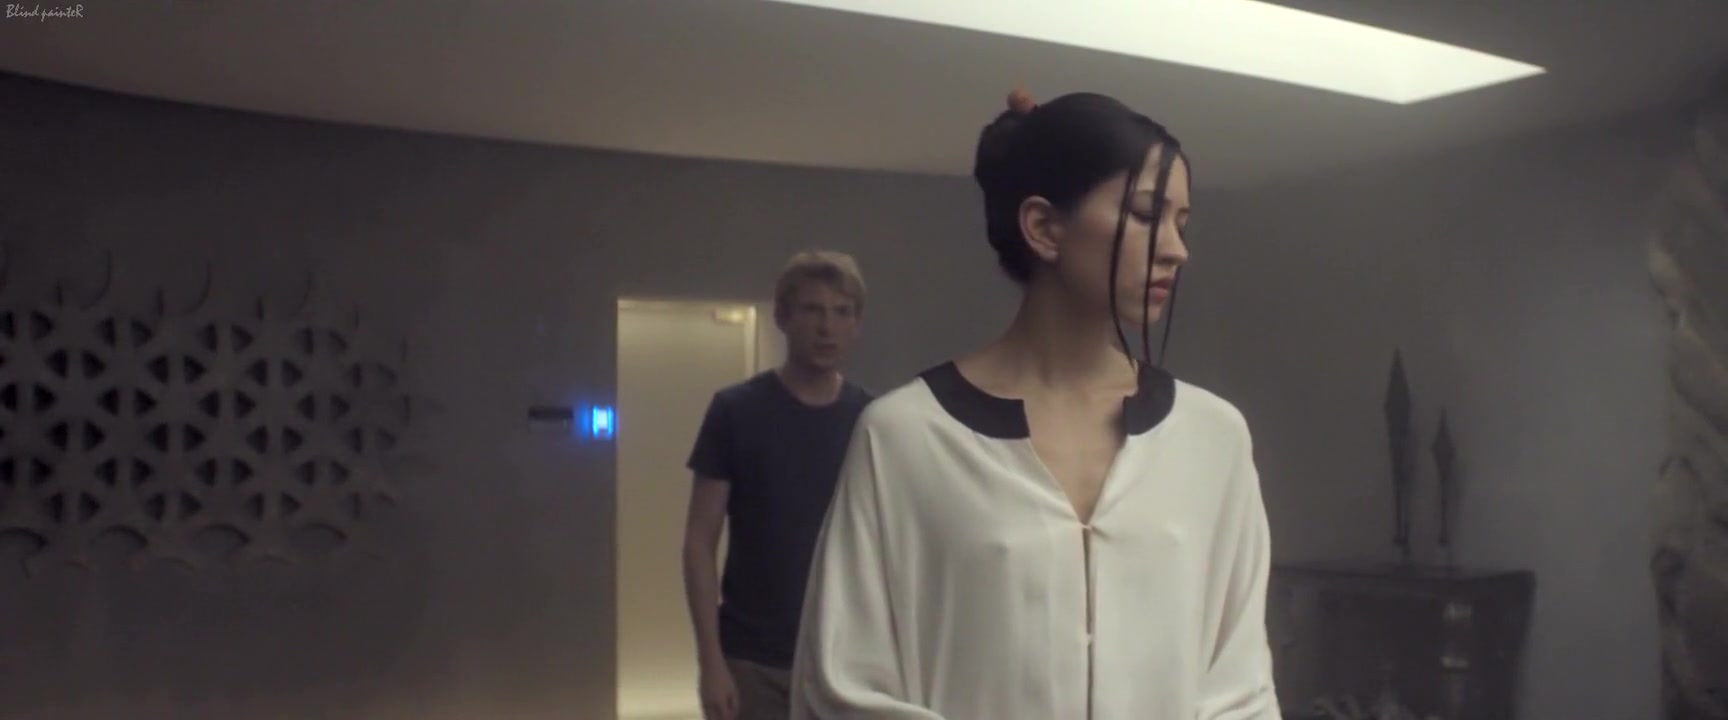 Ex Machina (2015) Sonoya Mizuno, Claire Selby and Other My Wife Loves My Big Cock